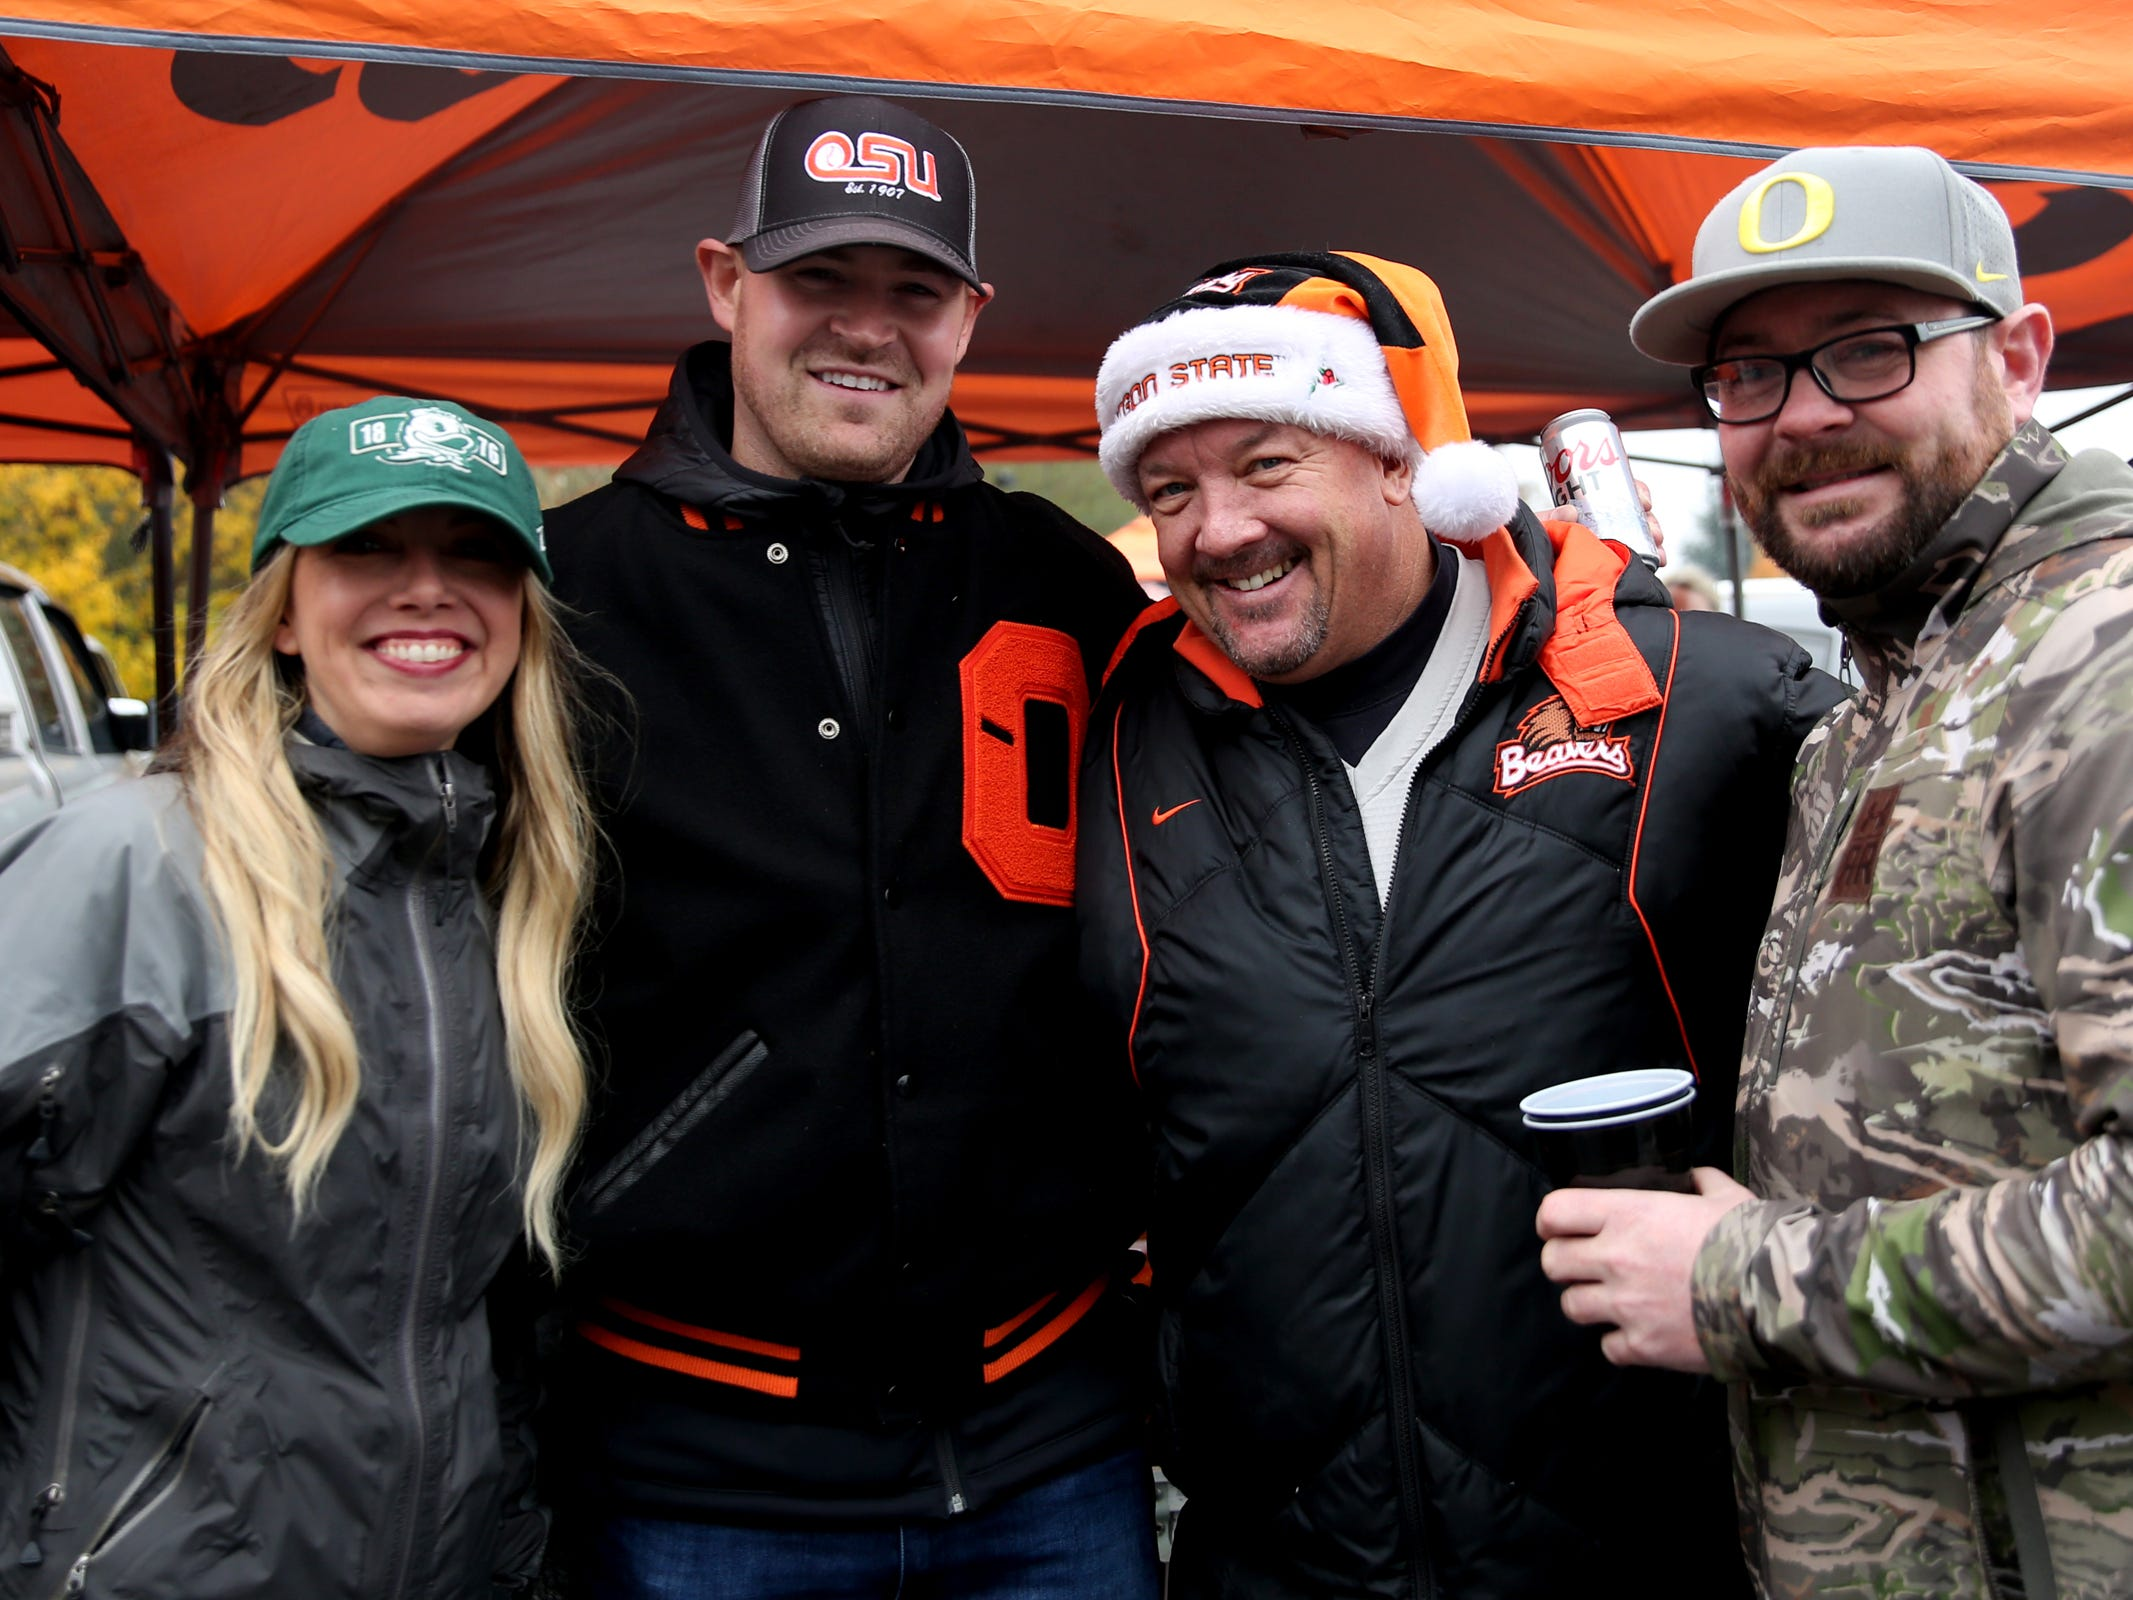 Friends, from left, Lisa Curry, of Portland, Taylor Starr, of Corvallis, Andy Noonan, of Corvallis, and Mark Buckingham, of Portland, root for different teams before the start of the Oregon vs. Oregon State Civil war football game at Oregon State University in Corvallis on Friday, Nov. 23, 2018.